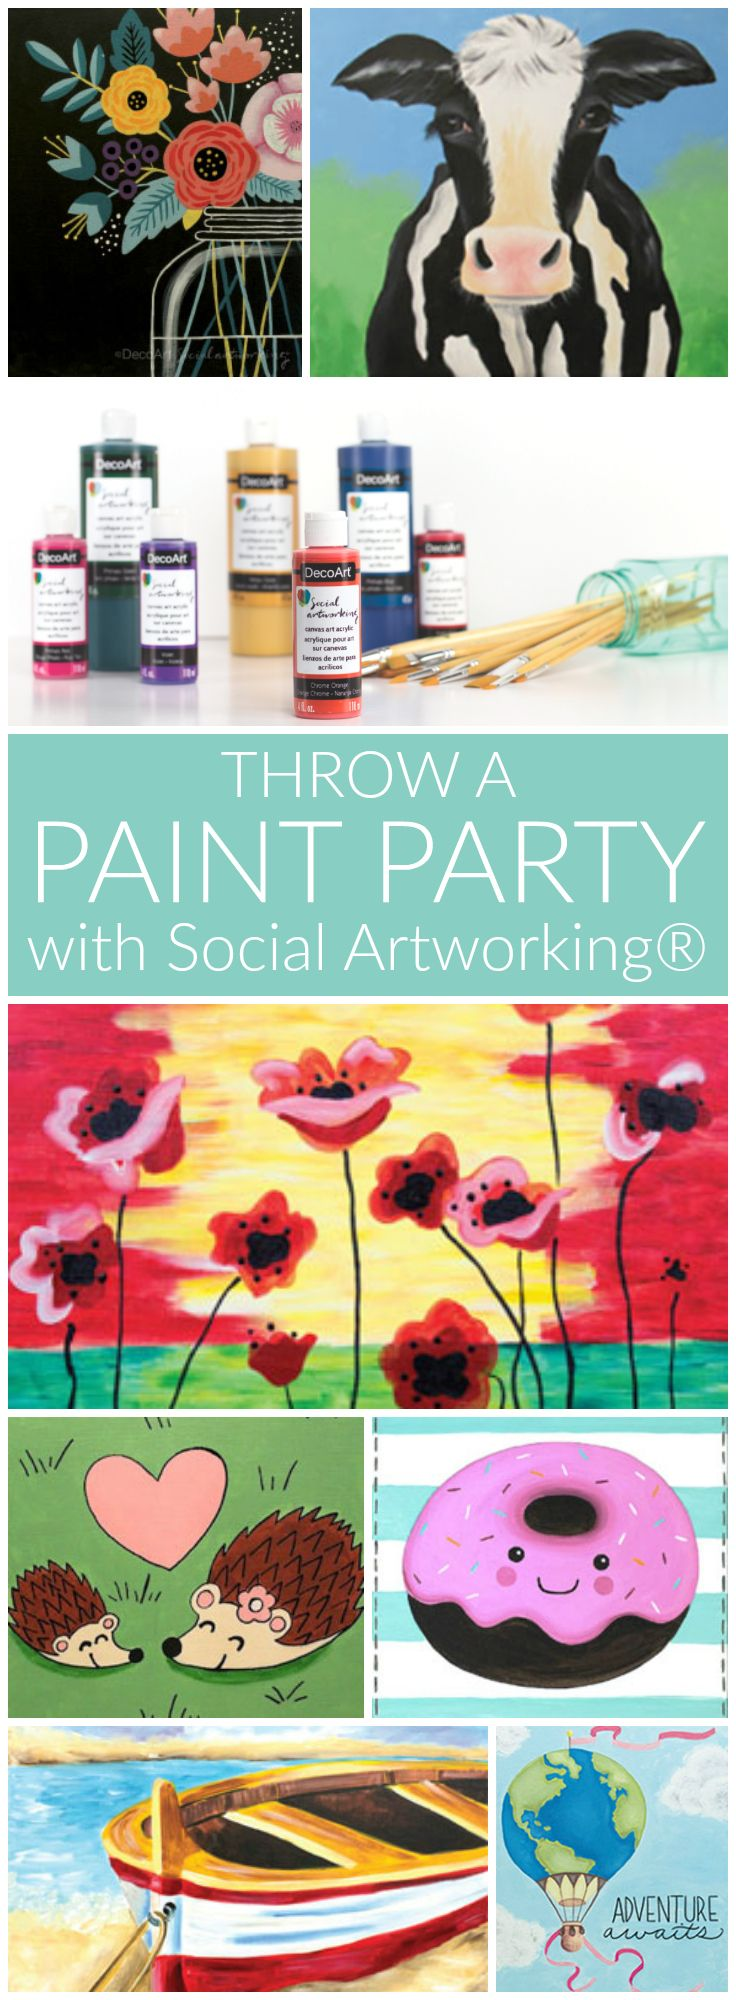 Throw a DIY paint party with Social Artworking® - Social Artworking® is a program created by DecoArt to make learning to paint on canvas and hosting a canvas painting party easy and fun. Our patterns and step-by-step instructions make it easy for the first-time painter to have 100% success! #SocialArtworking